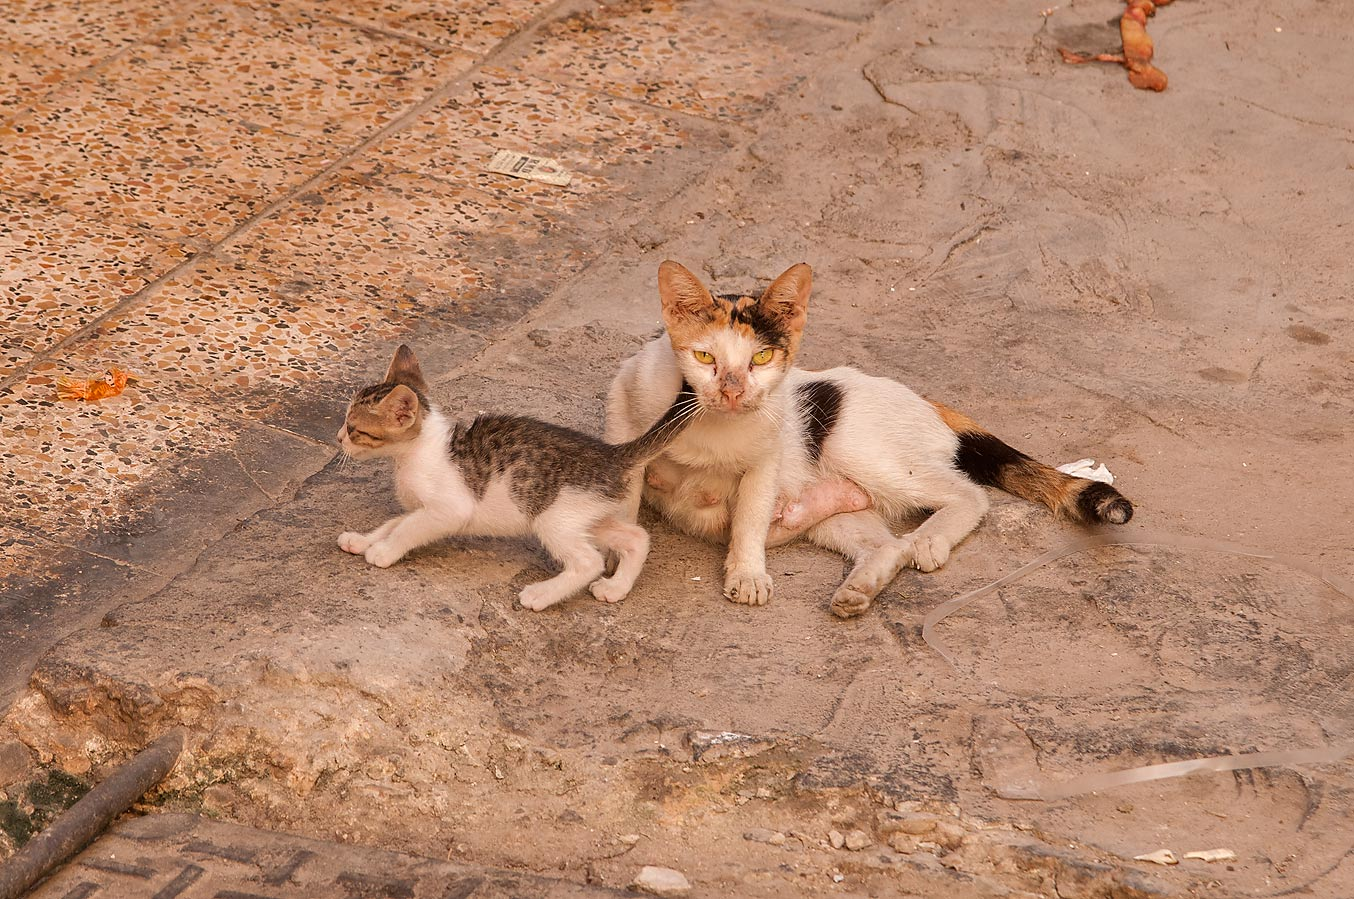 Family of cats at Al Aqaba St., Fereej Abdel Aziz area. Doha, Qatar